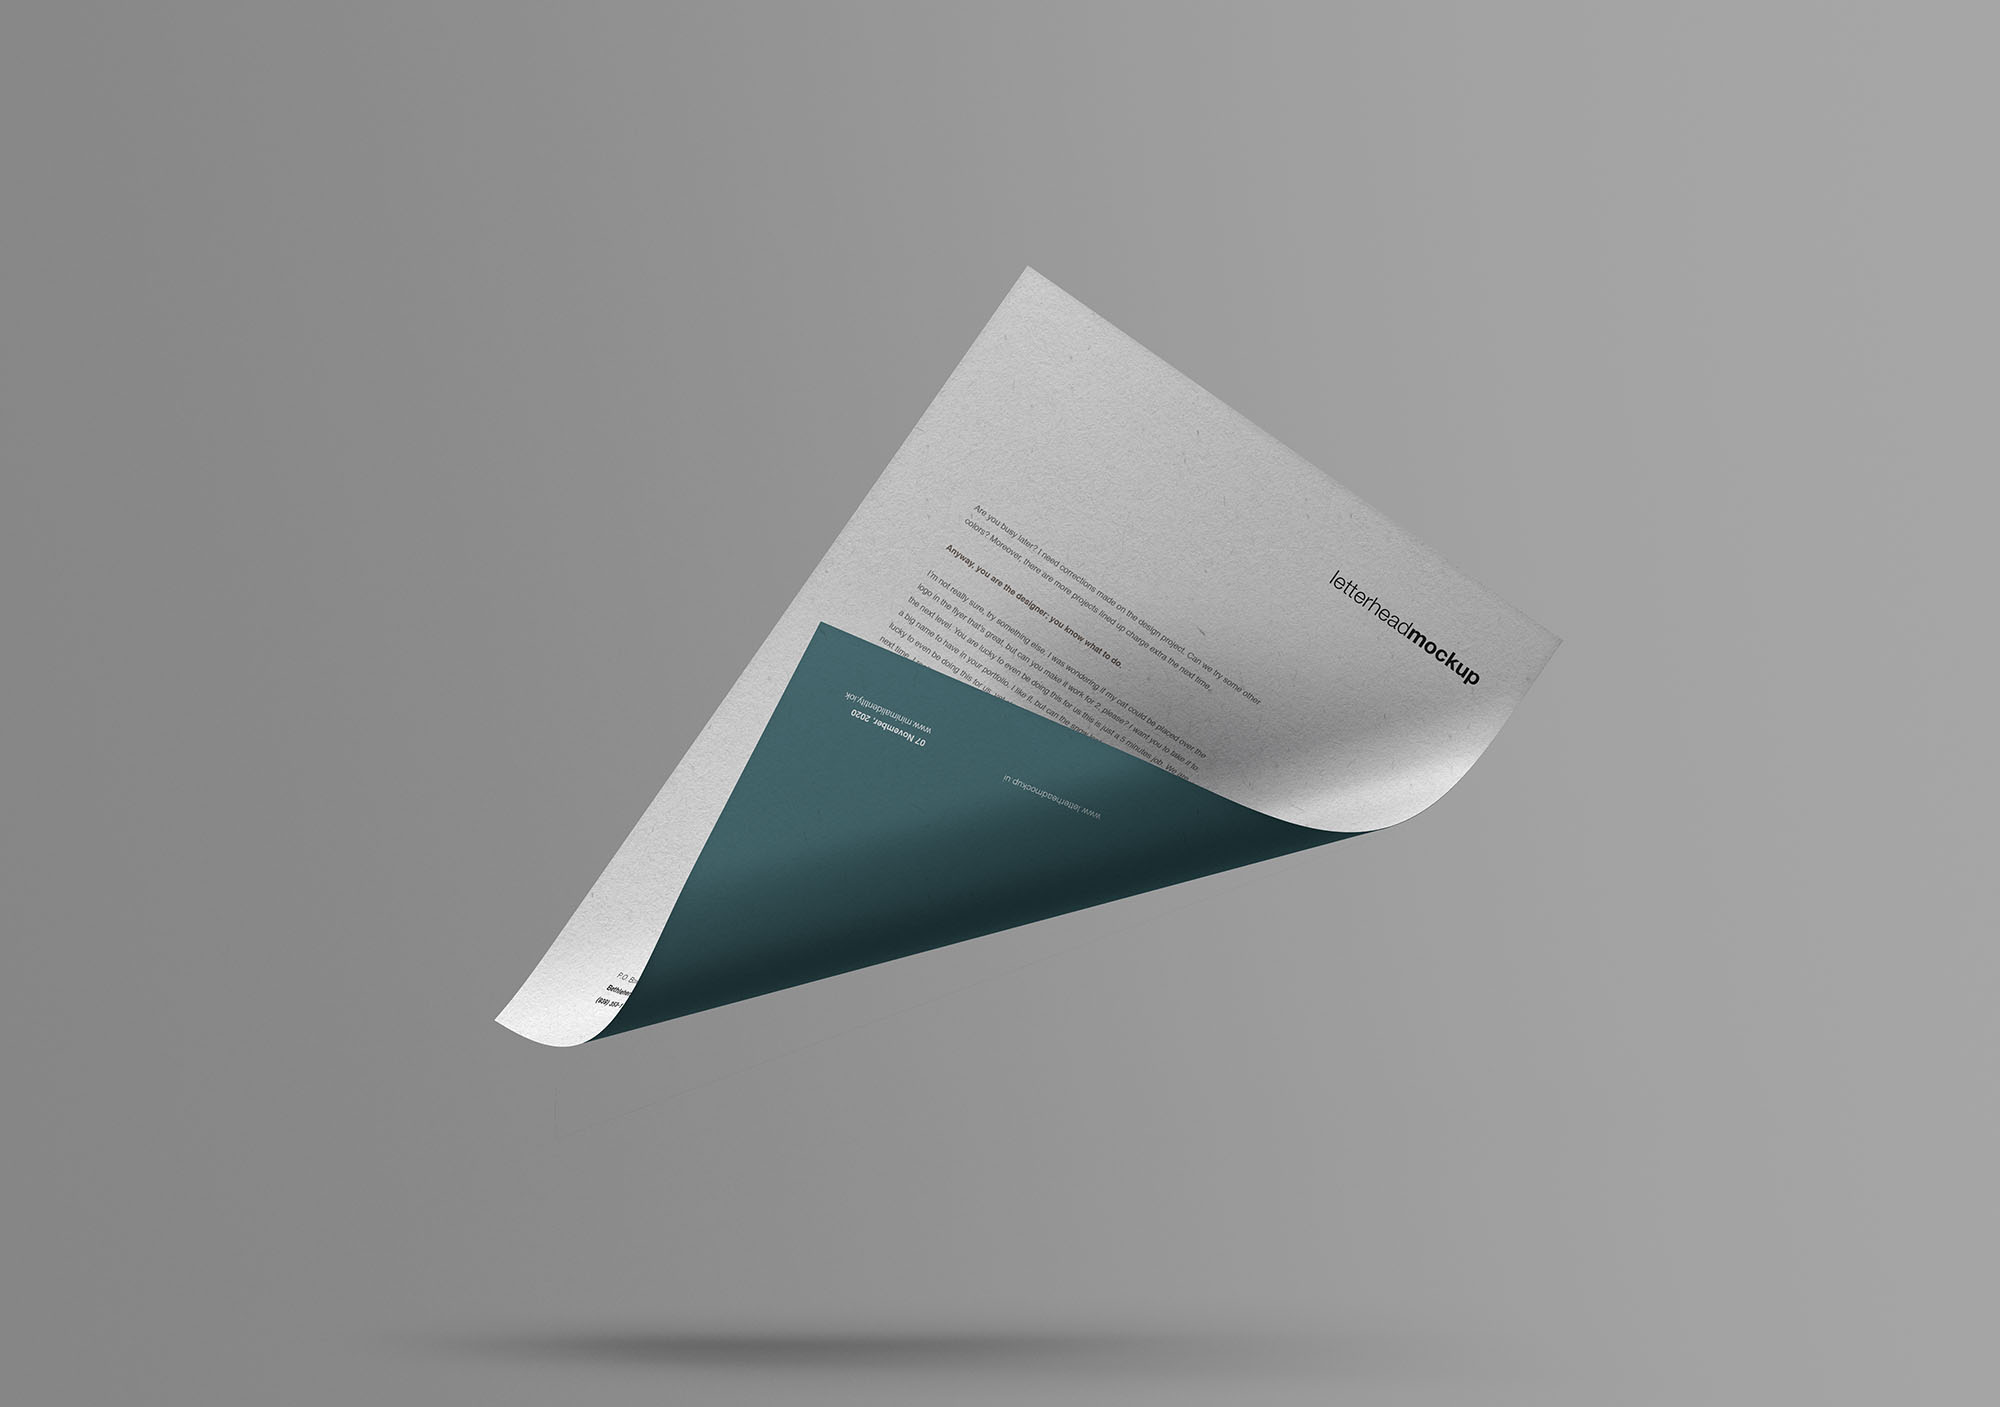 Floating A4 Paper Free Mockup